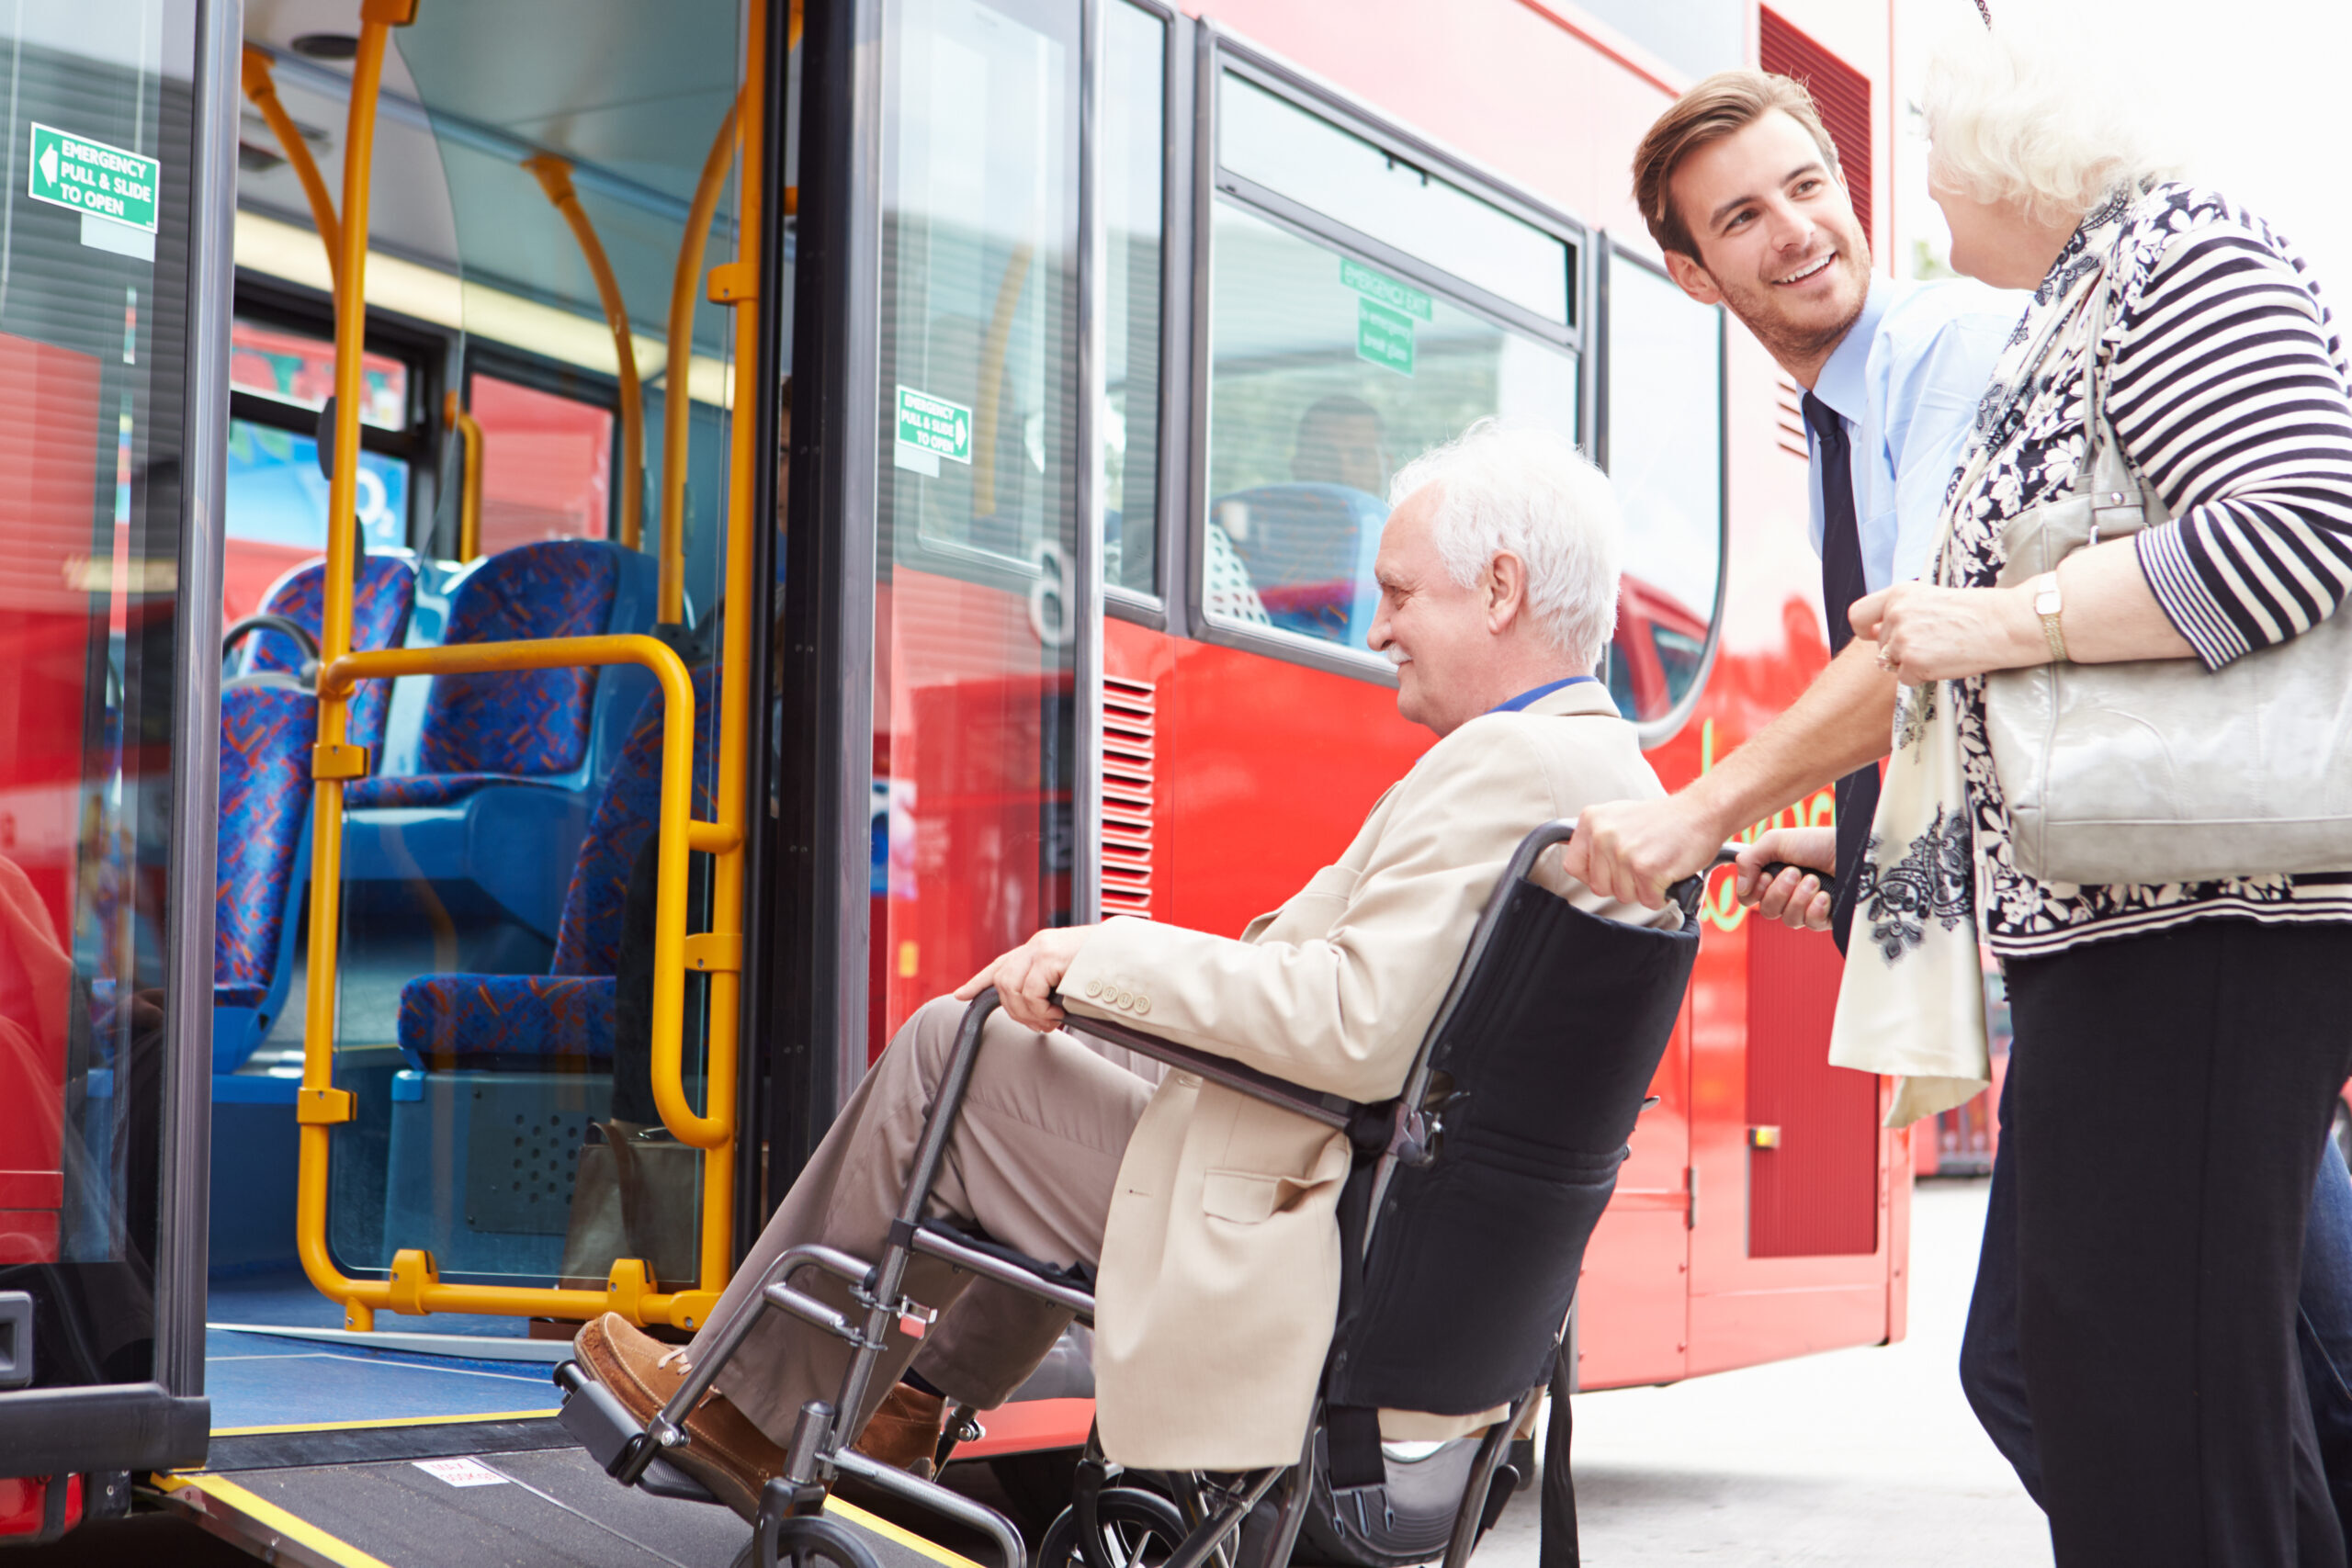 Transportation for people with developmental disabilities.